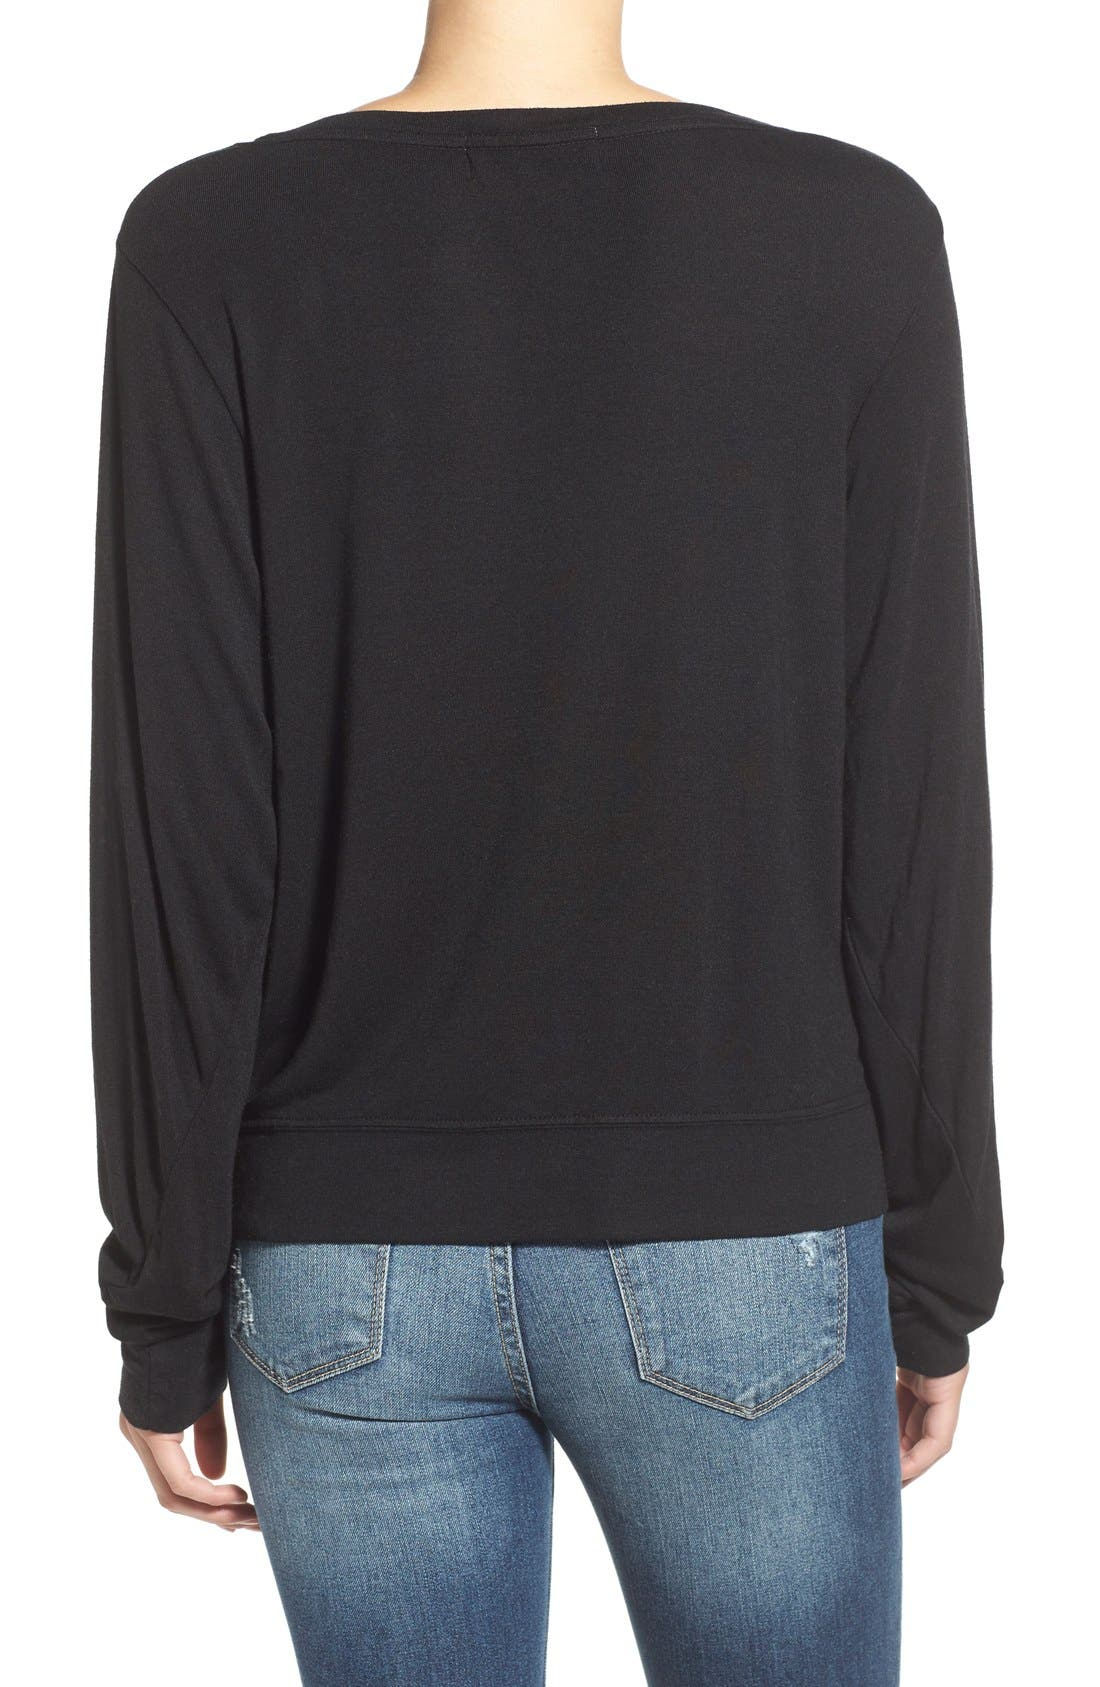 'Baggy Beach Jumper - Rockin Around' Pullover,                             Alternate thumbnail 5, color,                             001